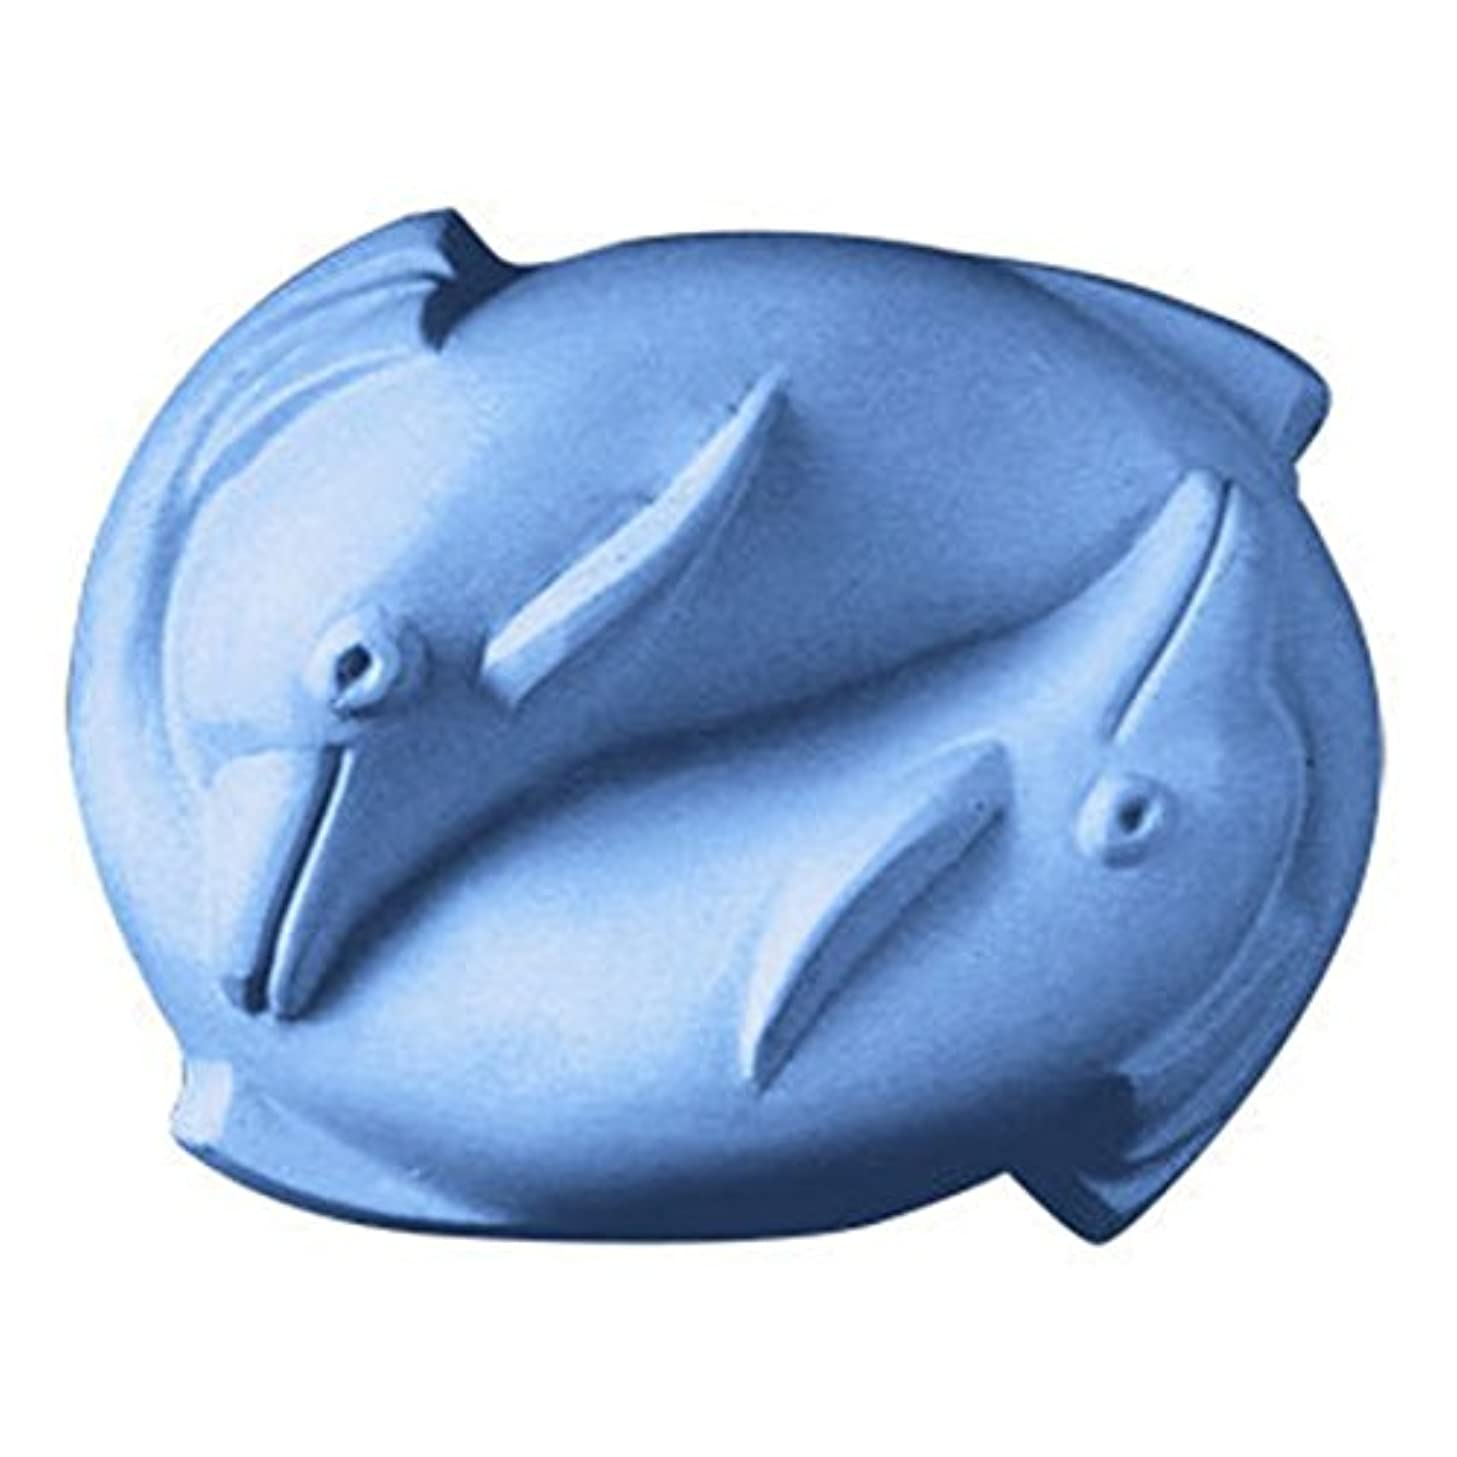 Dolphins Soap Mold (MW 38) -  Milky Way. Melt & Pour, Cold Process w/ Exclusive Copyrighted Full Color Cybrtrayd Soap Molding Instructions in a Sealed Poly Bag